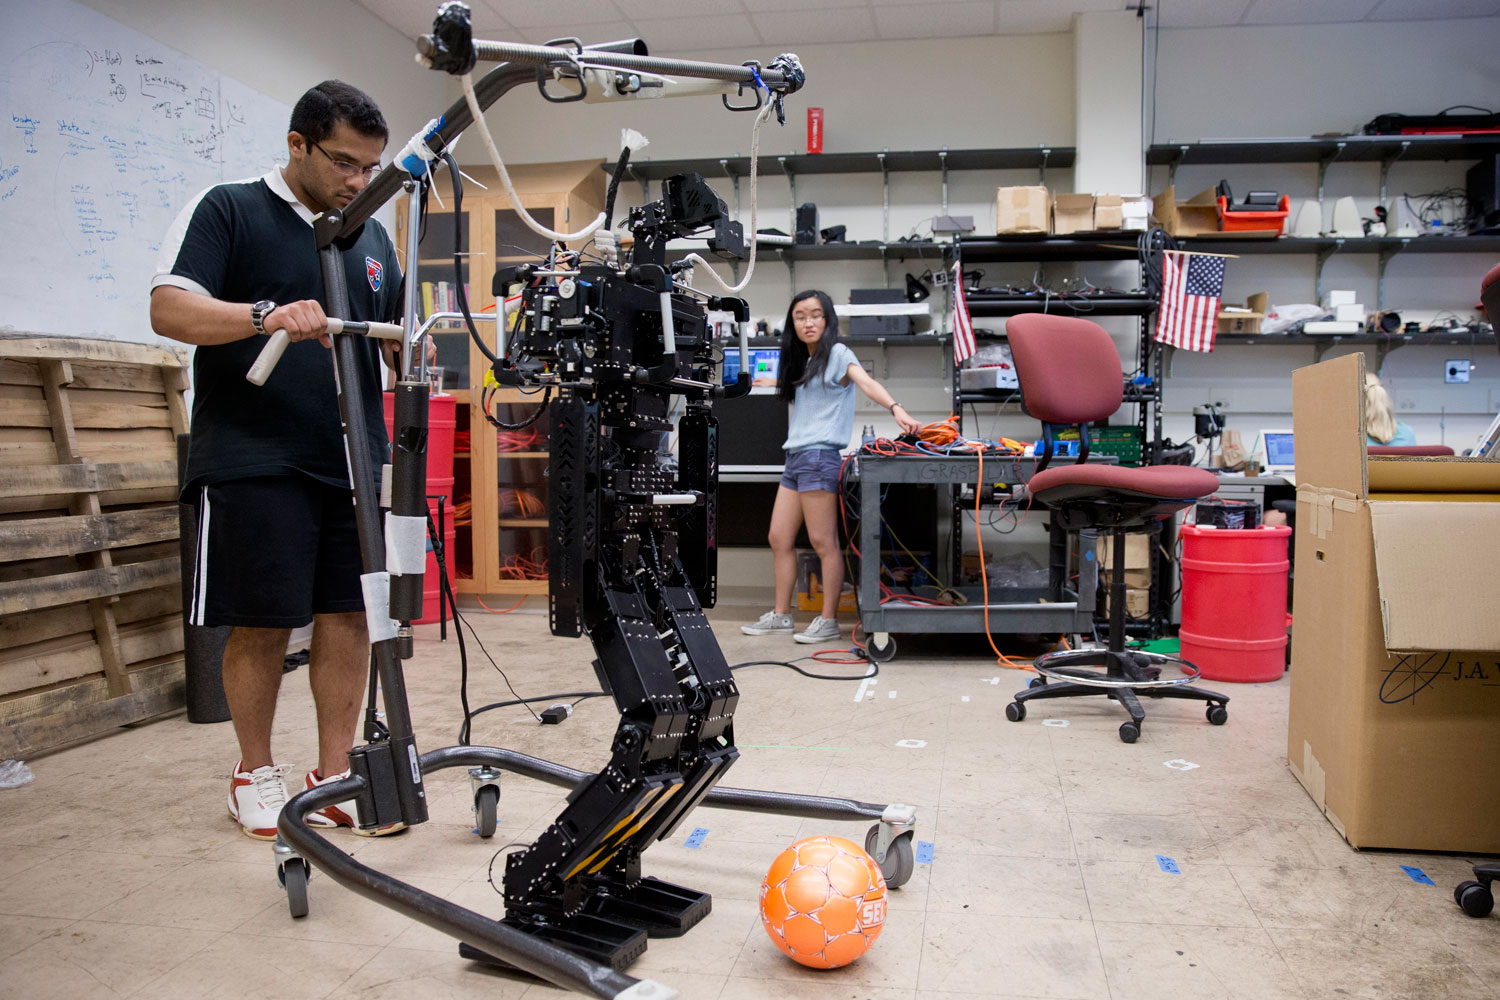 Research associates Larry Vadakedathu and Qin He work with one of their RoboCup entries, a 5-foot-tall metal humanoid named THOR (Tactical Hazardous Operations Robot), in the adult-size league at the University of Pennsylvania in Philadelphia on July 7, 2014.